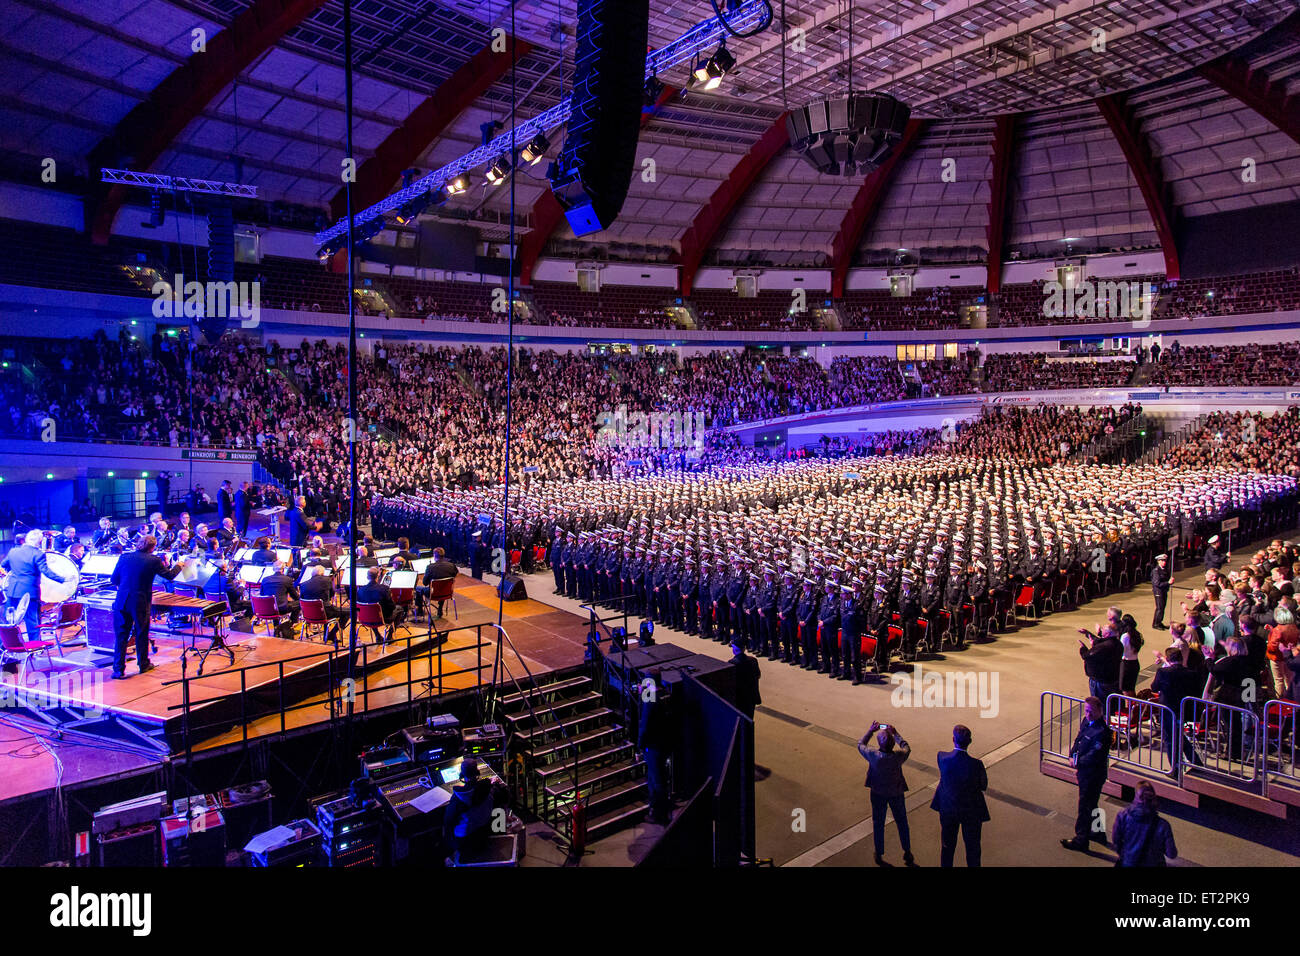 Swearing of 1500 new police officers in the in Dortmund, over 6000 family members and friends were watching the - Stock Image